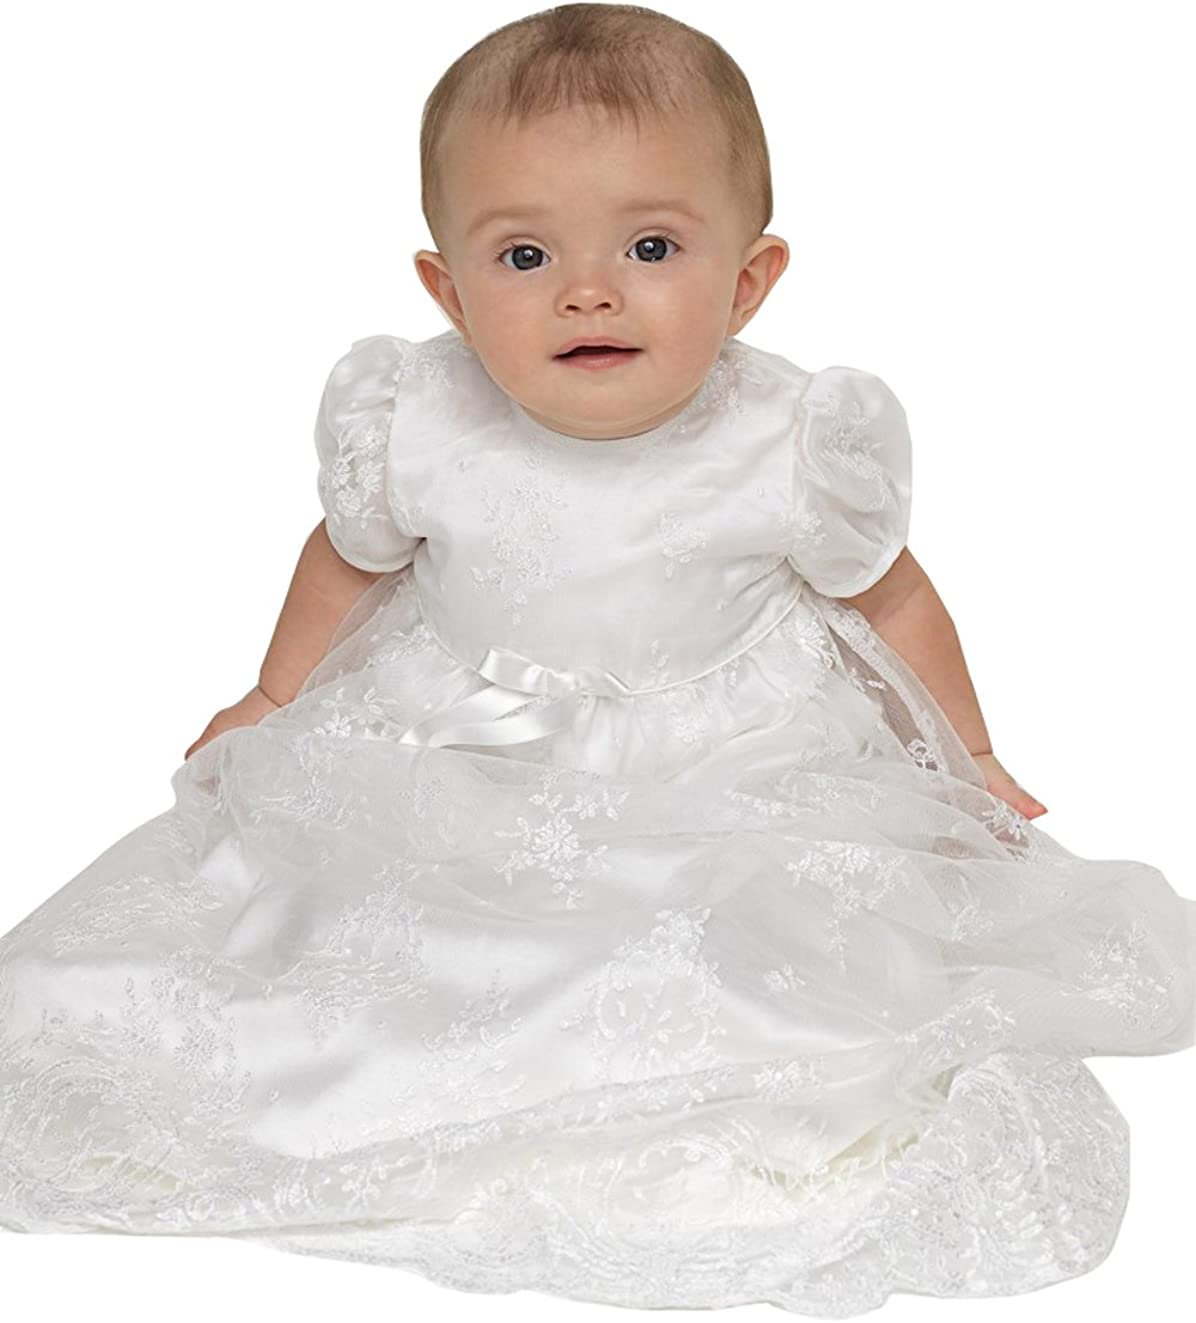 Kelaixiang Infant White Lace Christening Gowns for Baby Girls